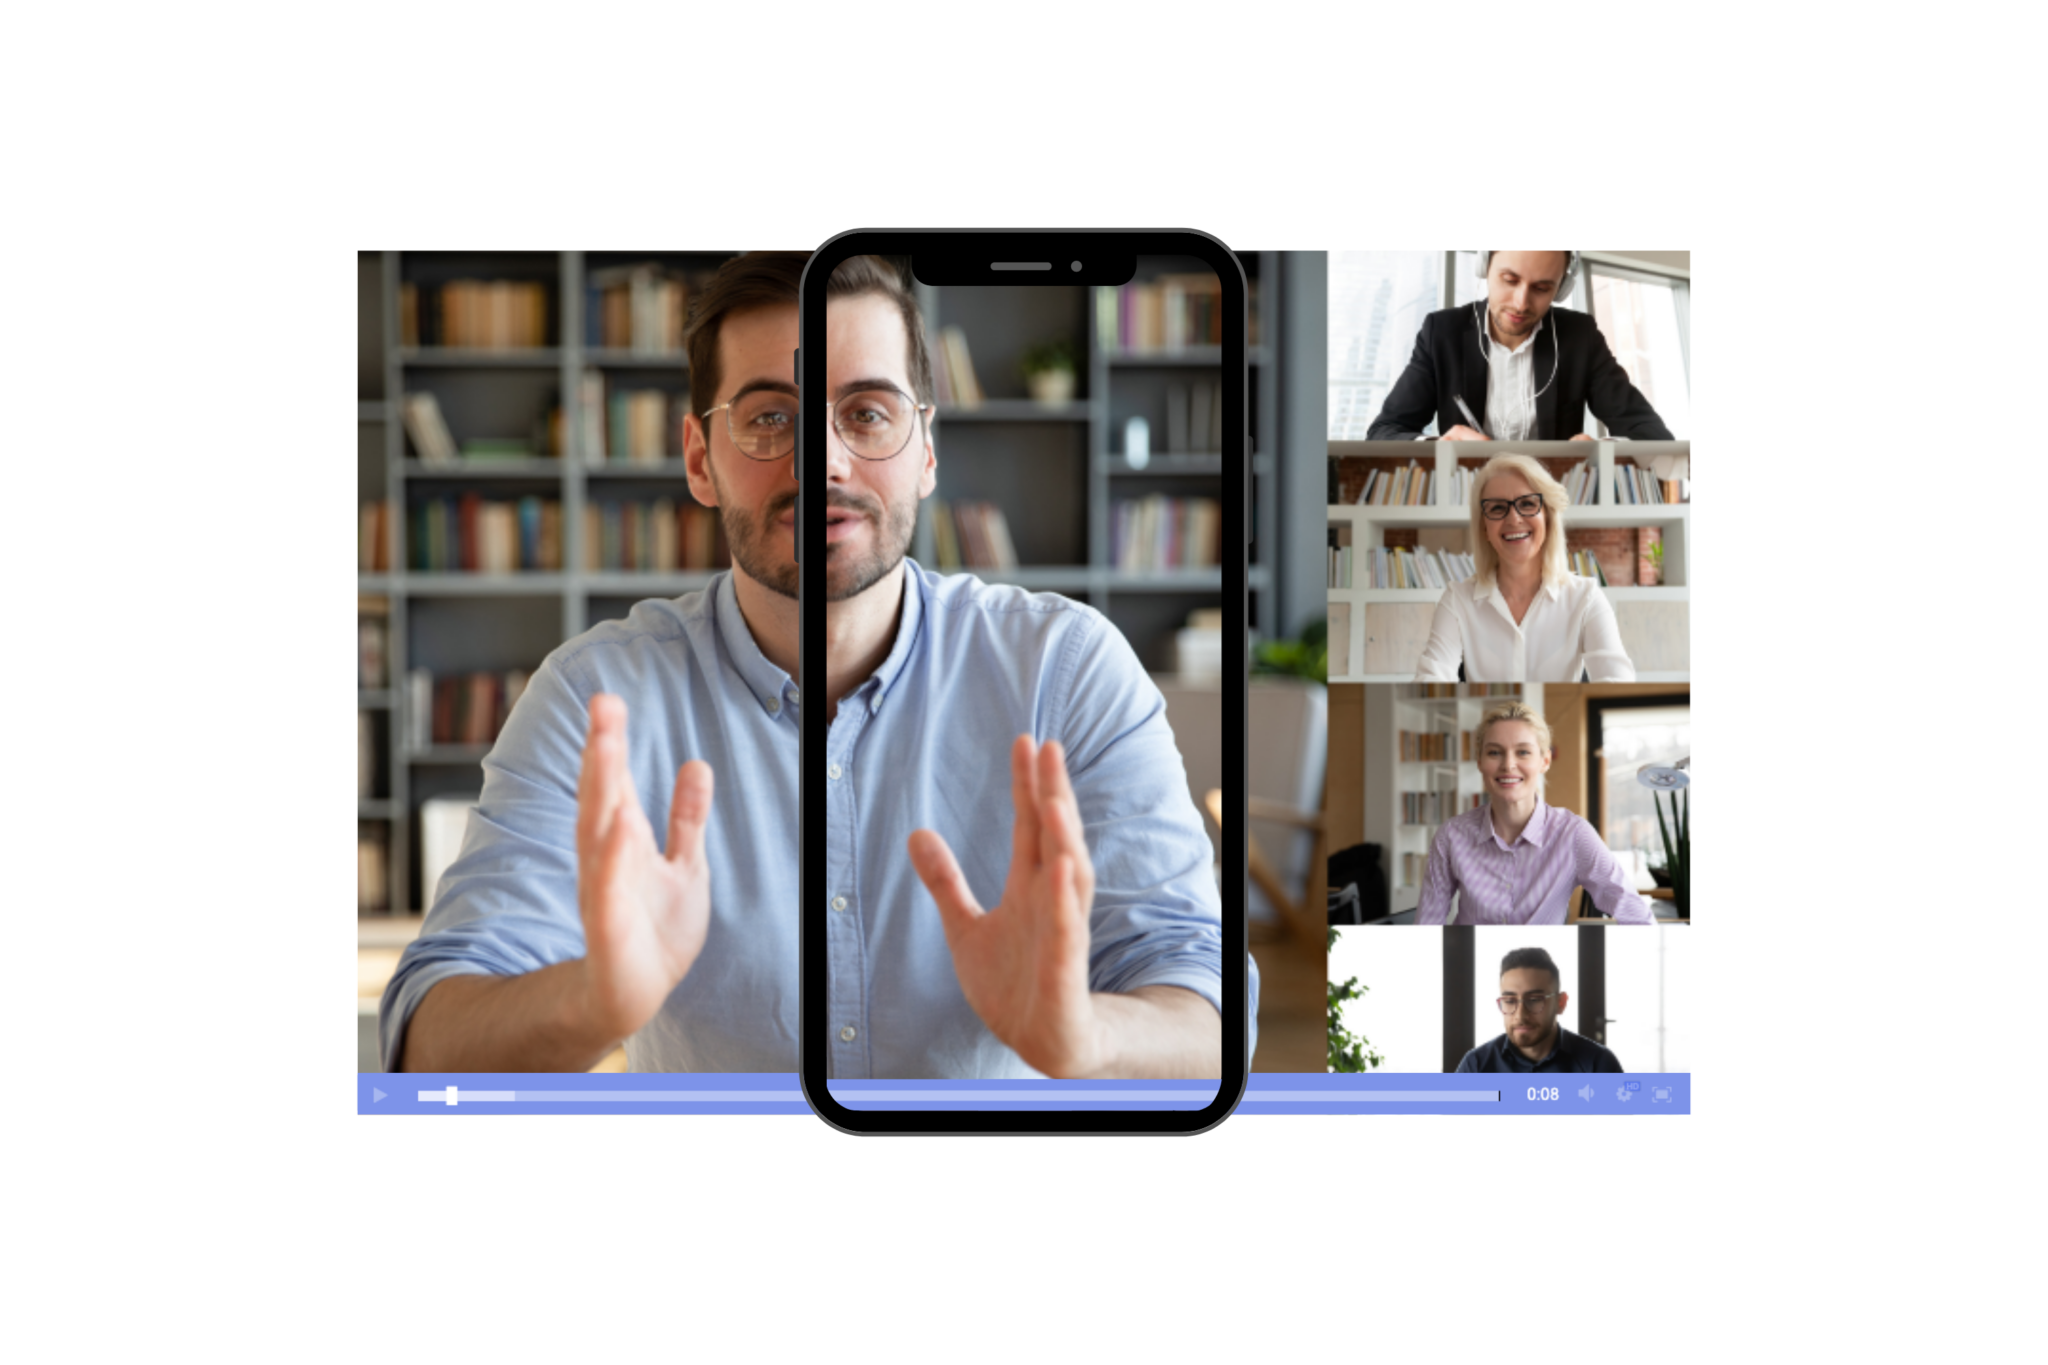 Video Platform for Sales - Enhance Your Sales Process with Video